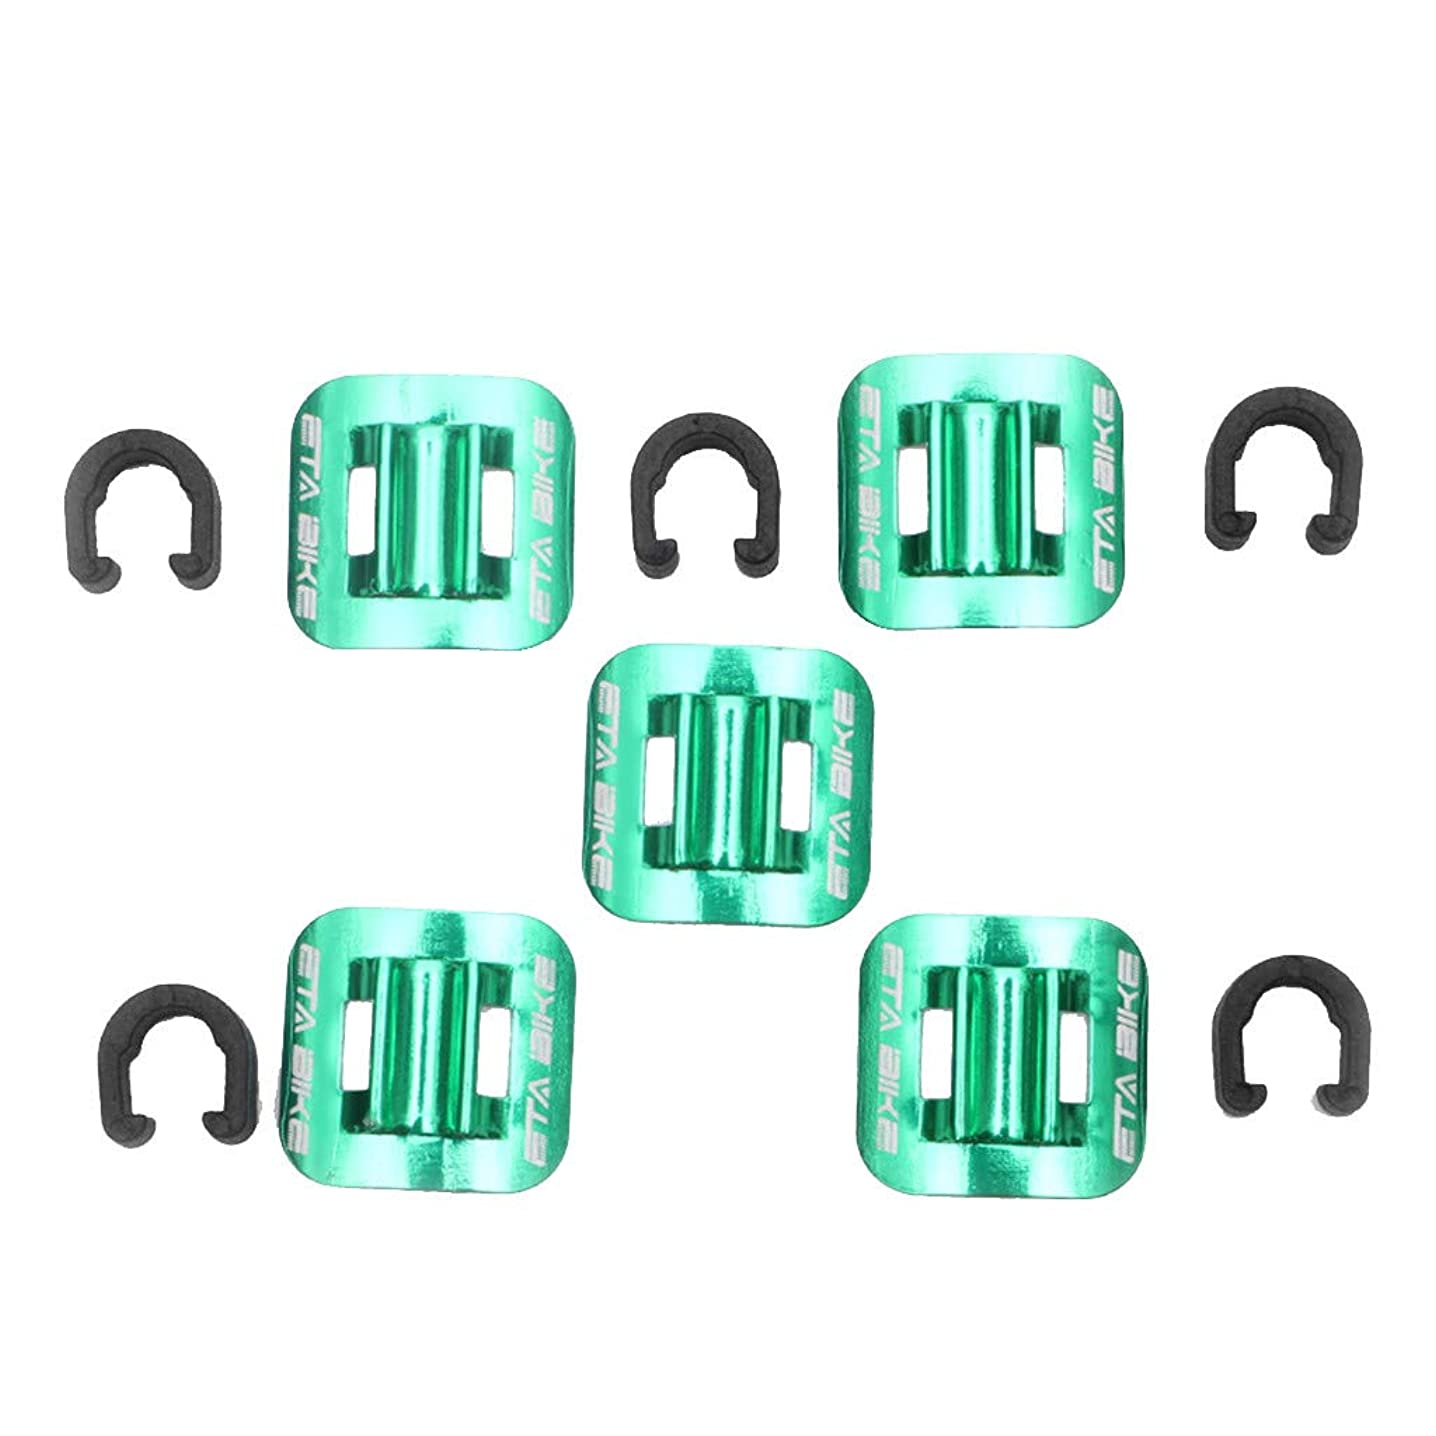 ?? Orcbee ?? _5Pcs Bicycle Brake Cable Fixed Clamp Conversion Seat MTB Bike Oil Tube Frame